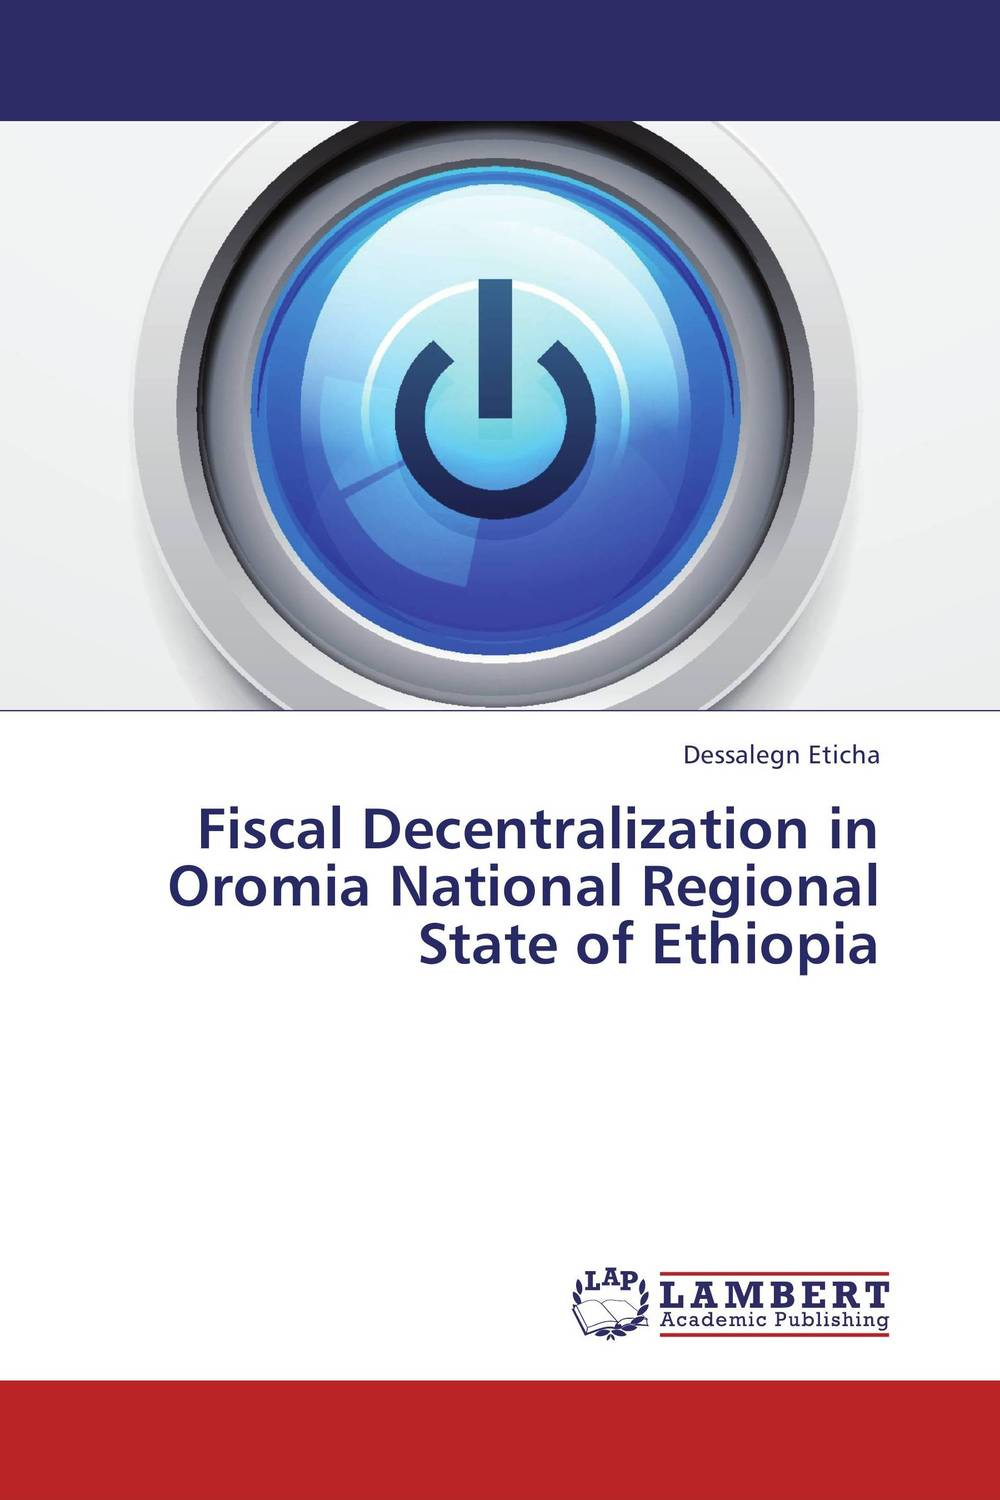 Fiscal Decentralization in Oromia National Regional State of Ethiopia paolo mauro chipping away at public debt sources of failure and keys to success in fiscal adjustment